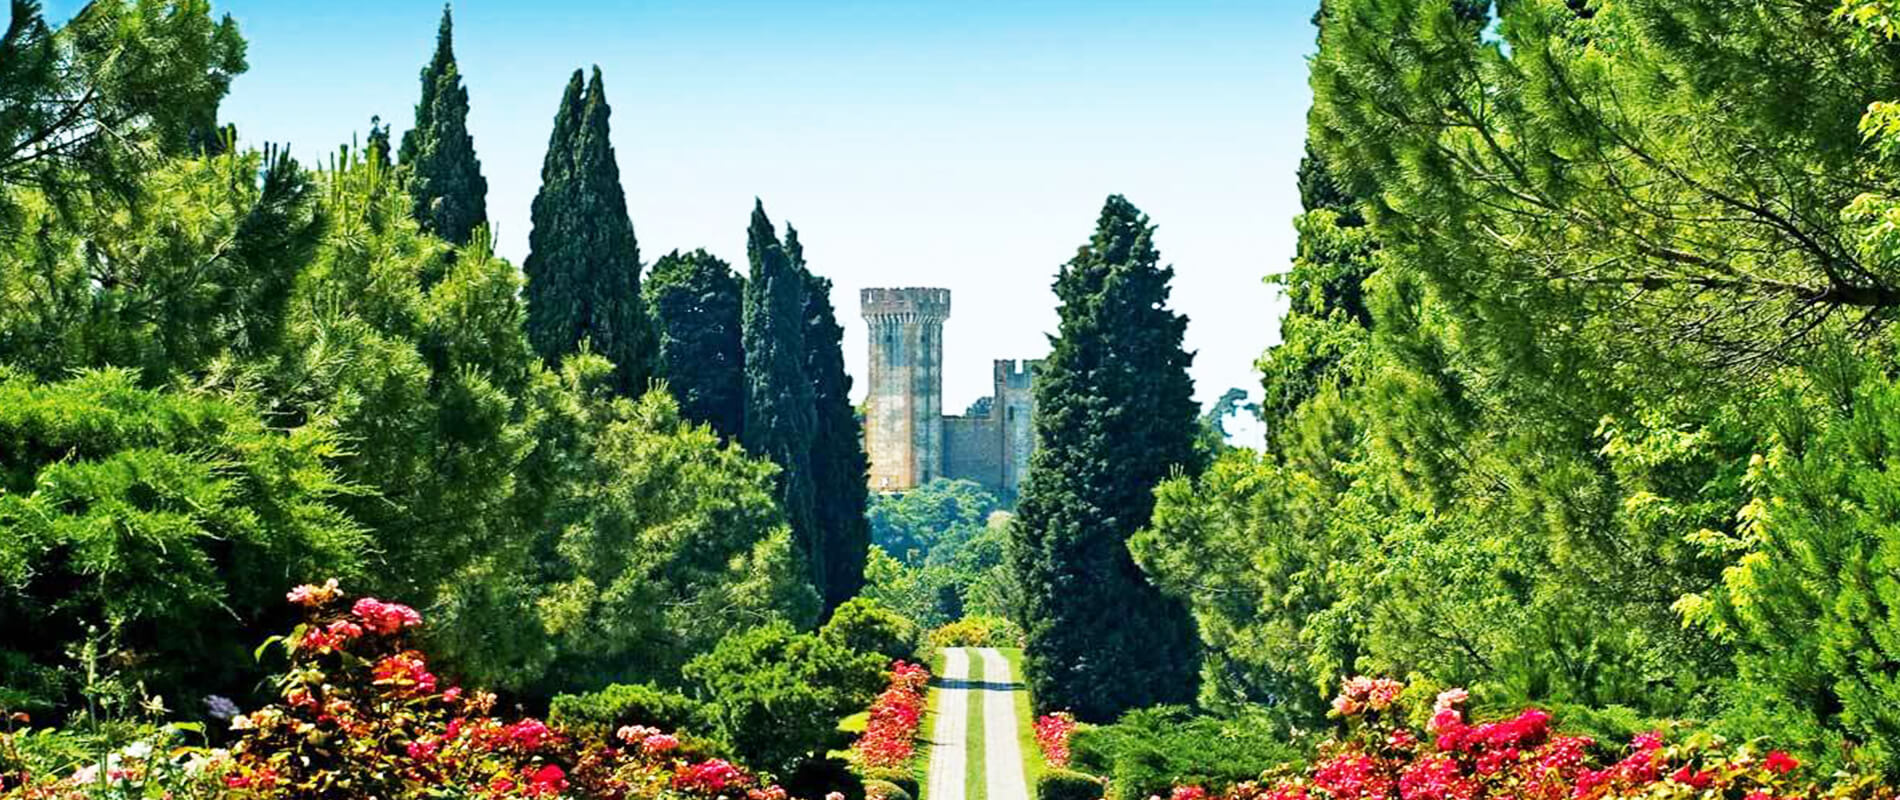 Parco Giardino Sigurtà, a green oasis of beauty in Europe